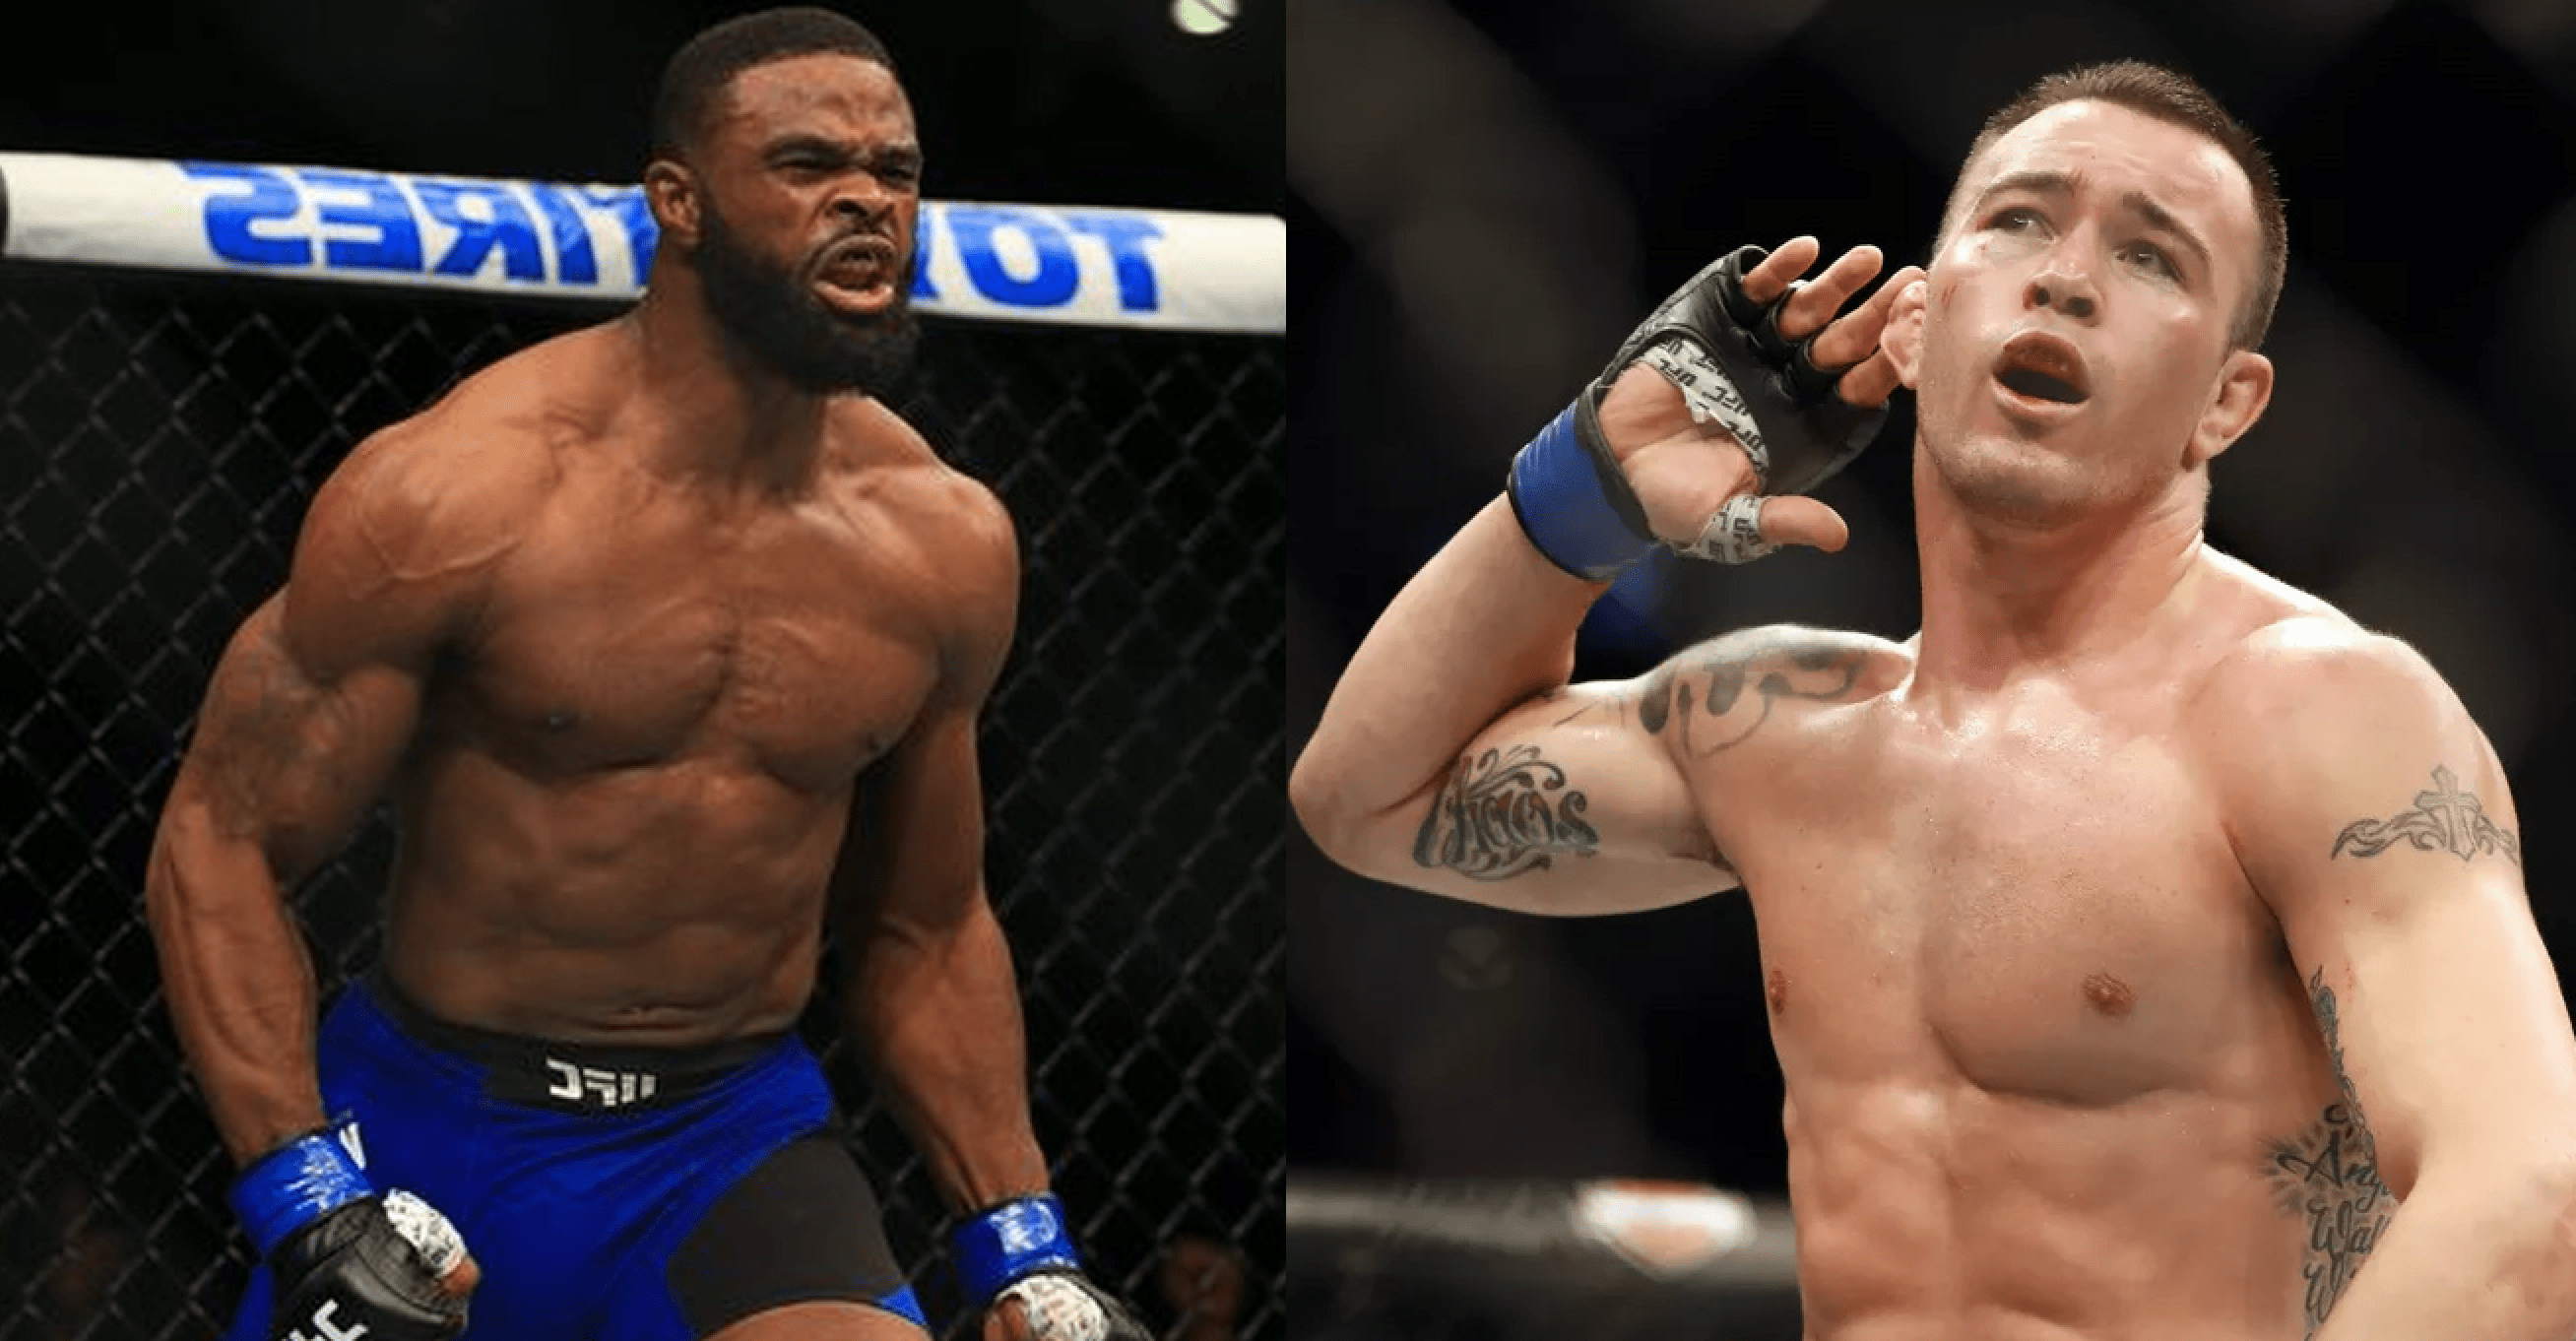 Tyron Woodley Says He's Agreed To Fight Colby Covington At UFC 249